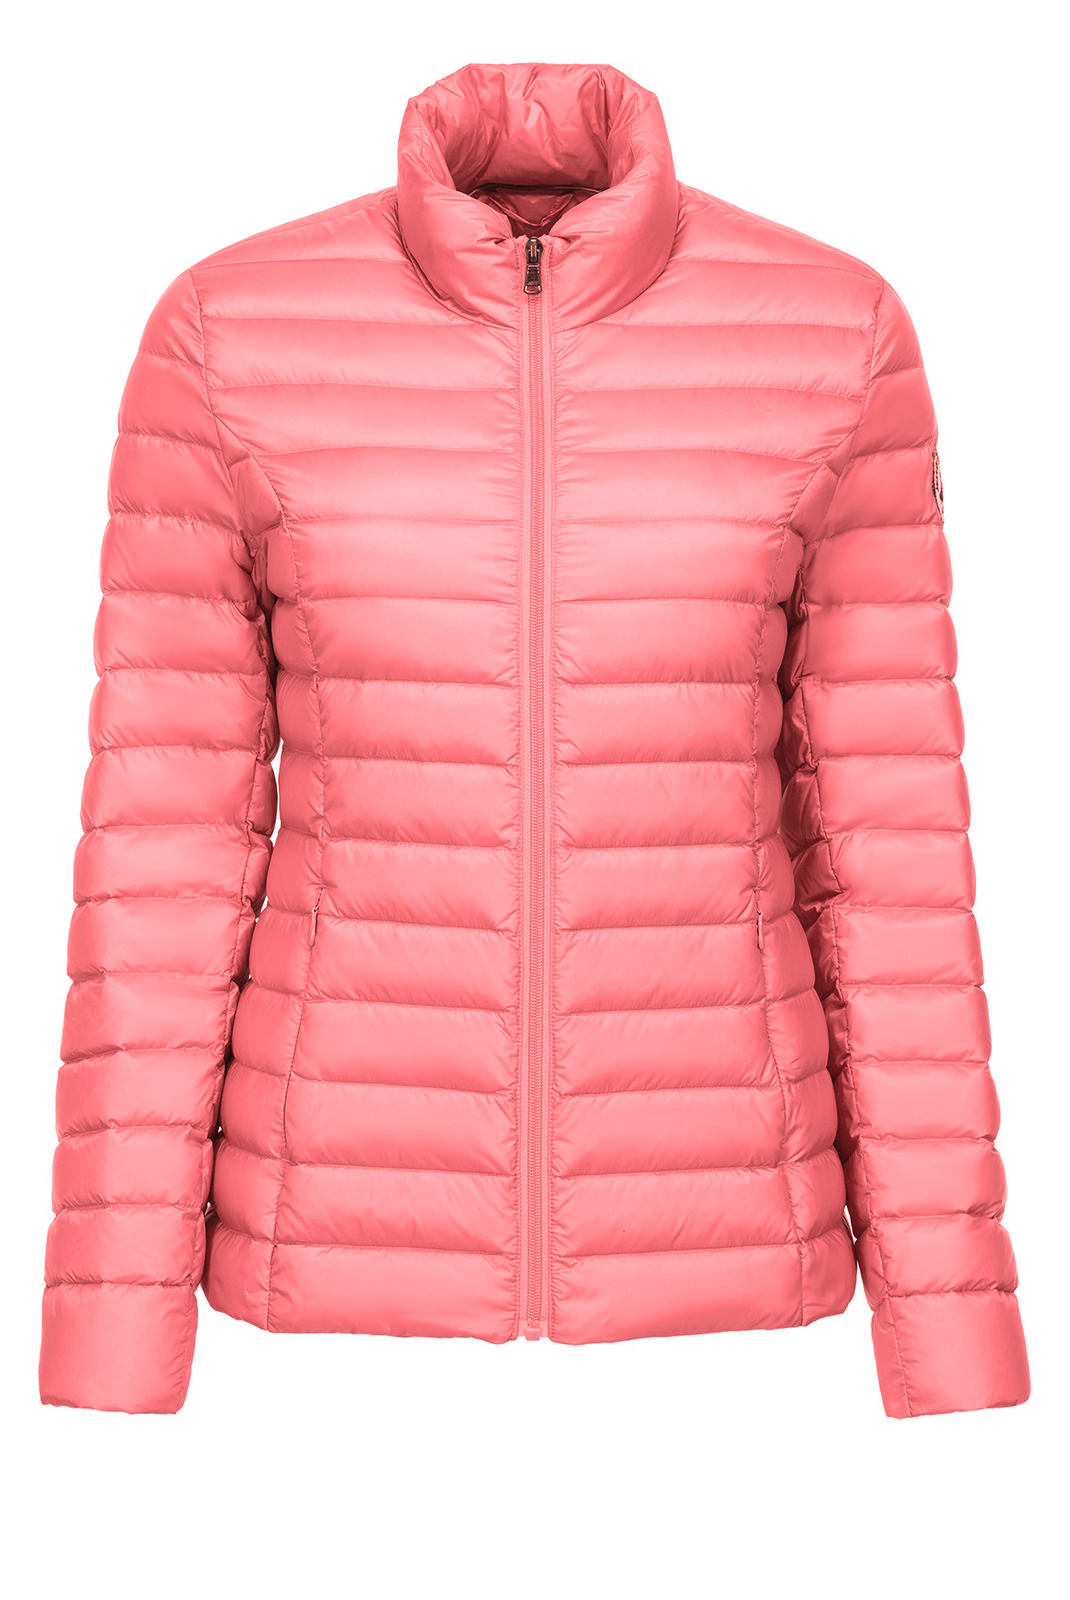 Blouson  Just over the top CHA 431 ROSE